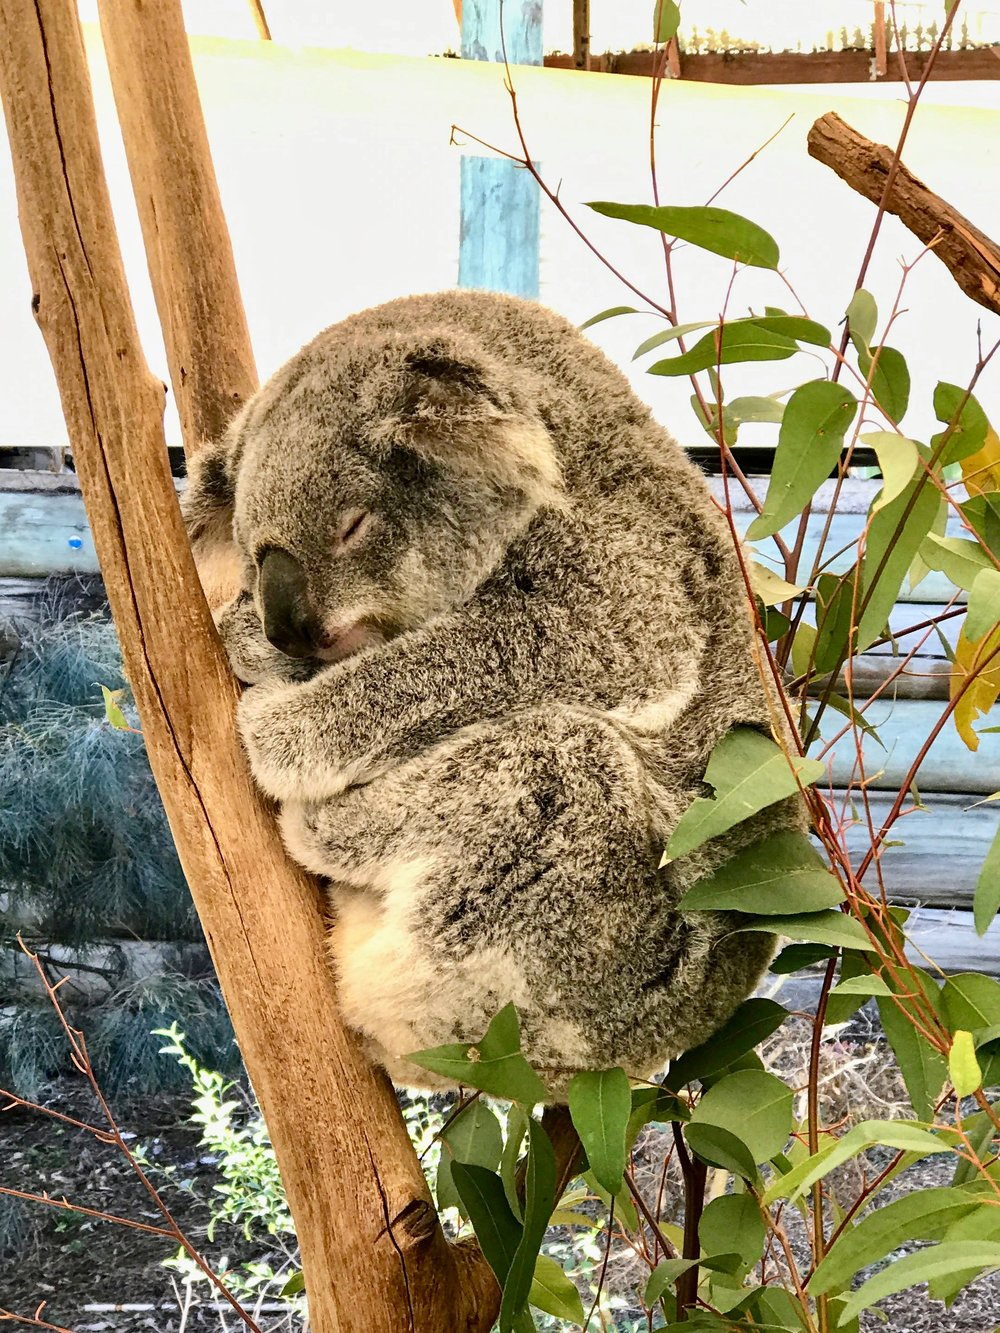 You can't touch the koalas while they are in their pens, but there are scheduled times throughout the day where you can hold one for a good photo opportunity.